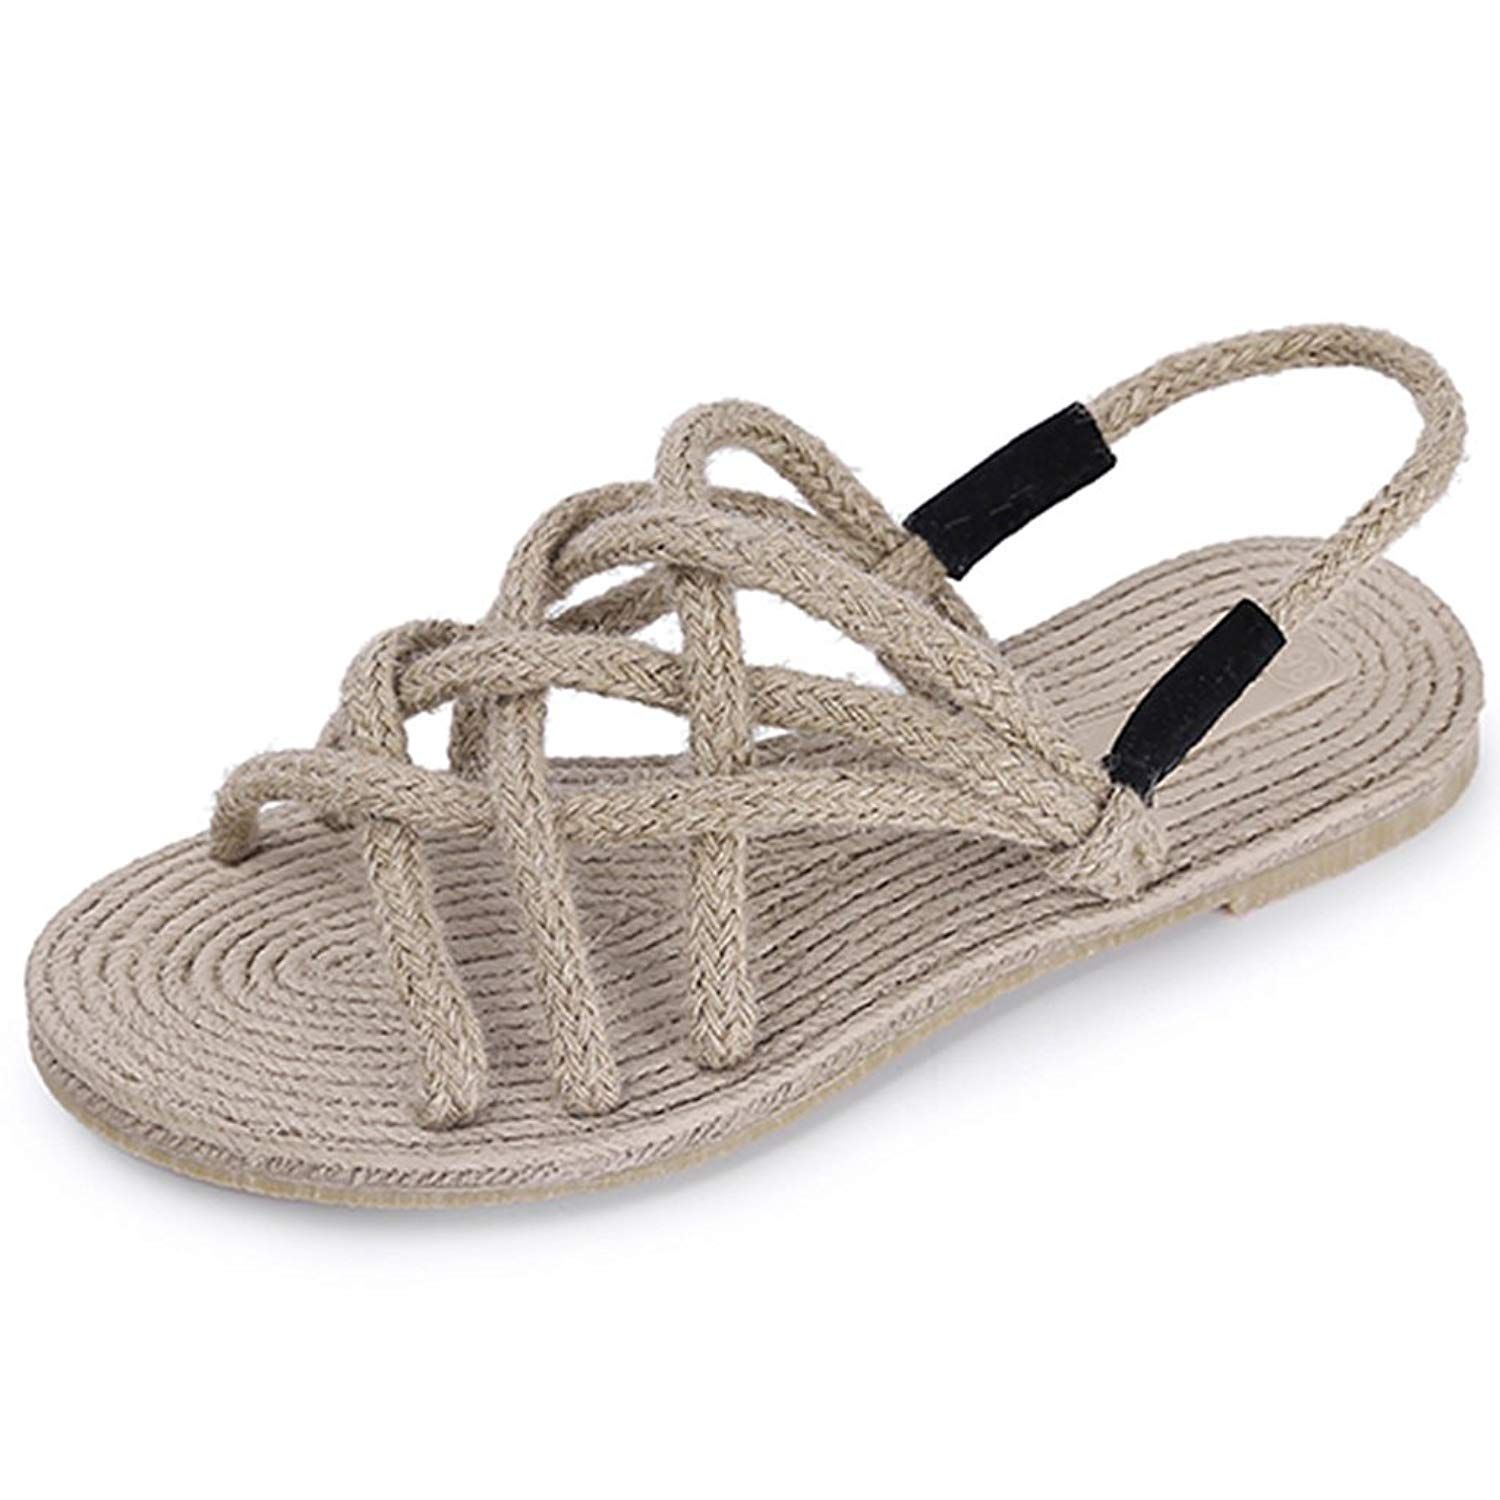 bc18704dc Get Quotations · Sandals Hemp Rope Sandals Female Summer Retro Roman Flat  Bottom Weave Students Casual Shoes